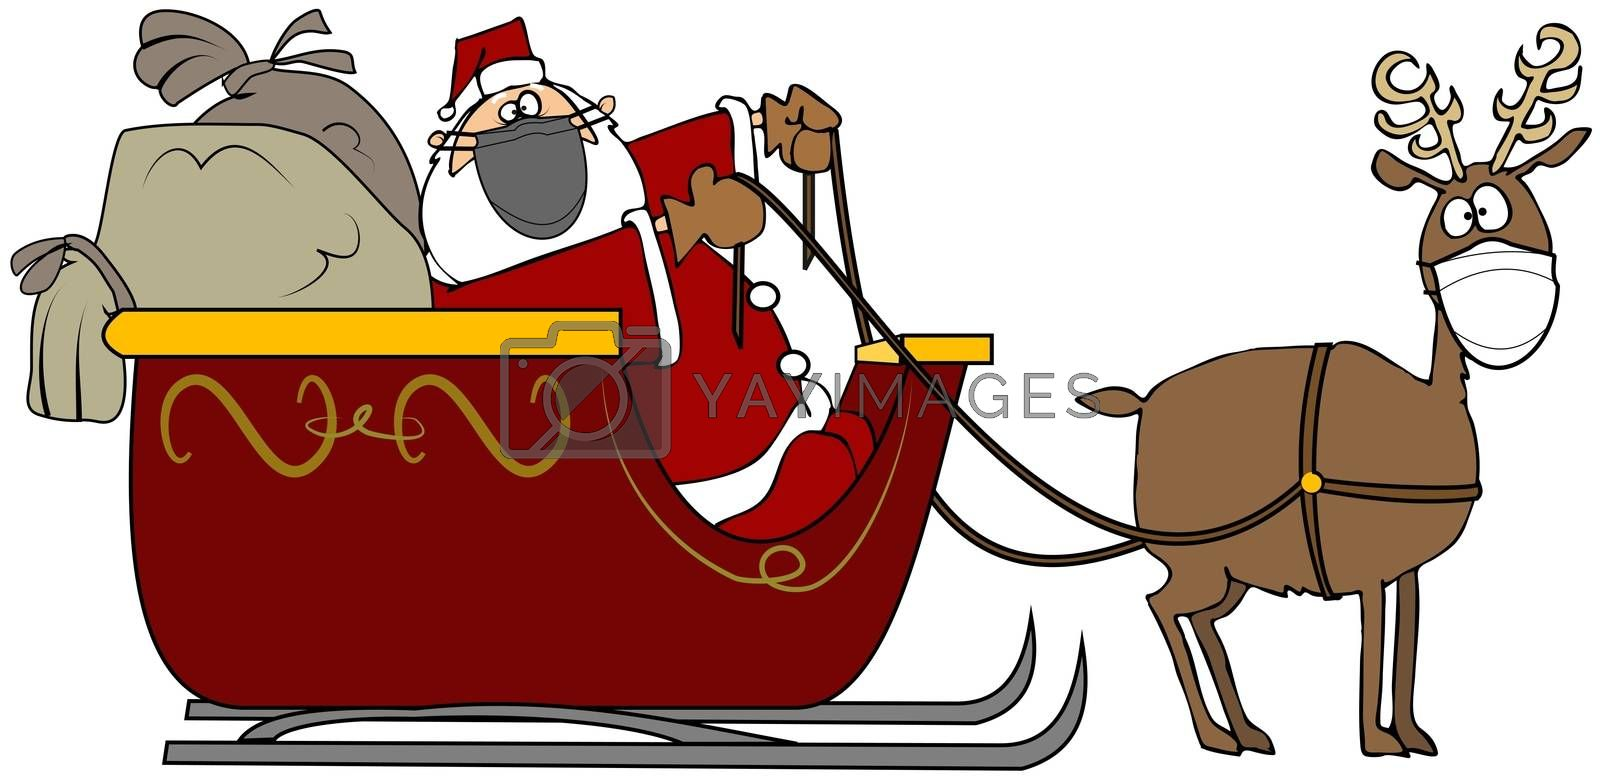 Illustration of Santa Claus in his sleigh filled with gifts being pulled by a single reindeer wearing a face mask.